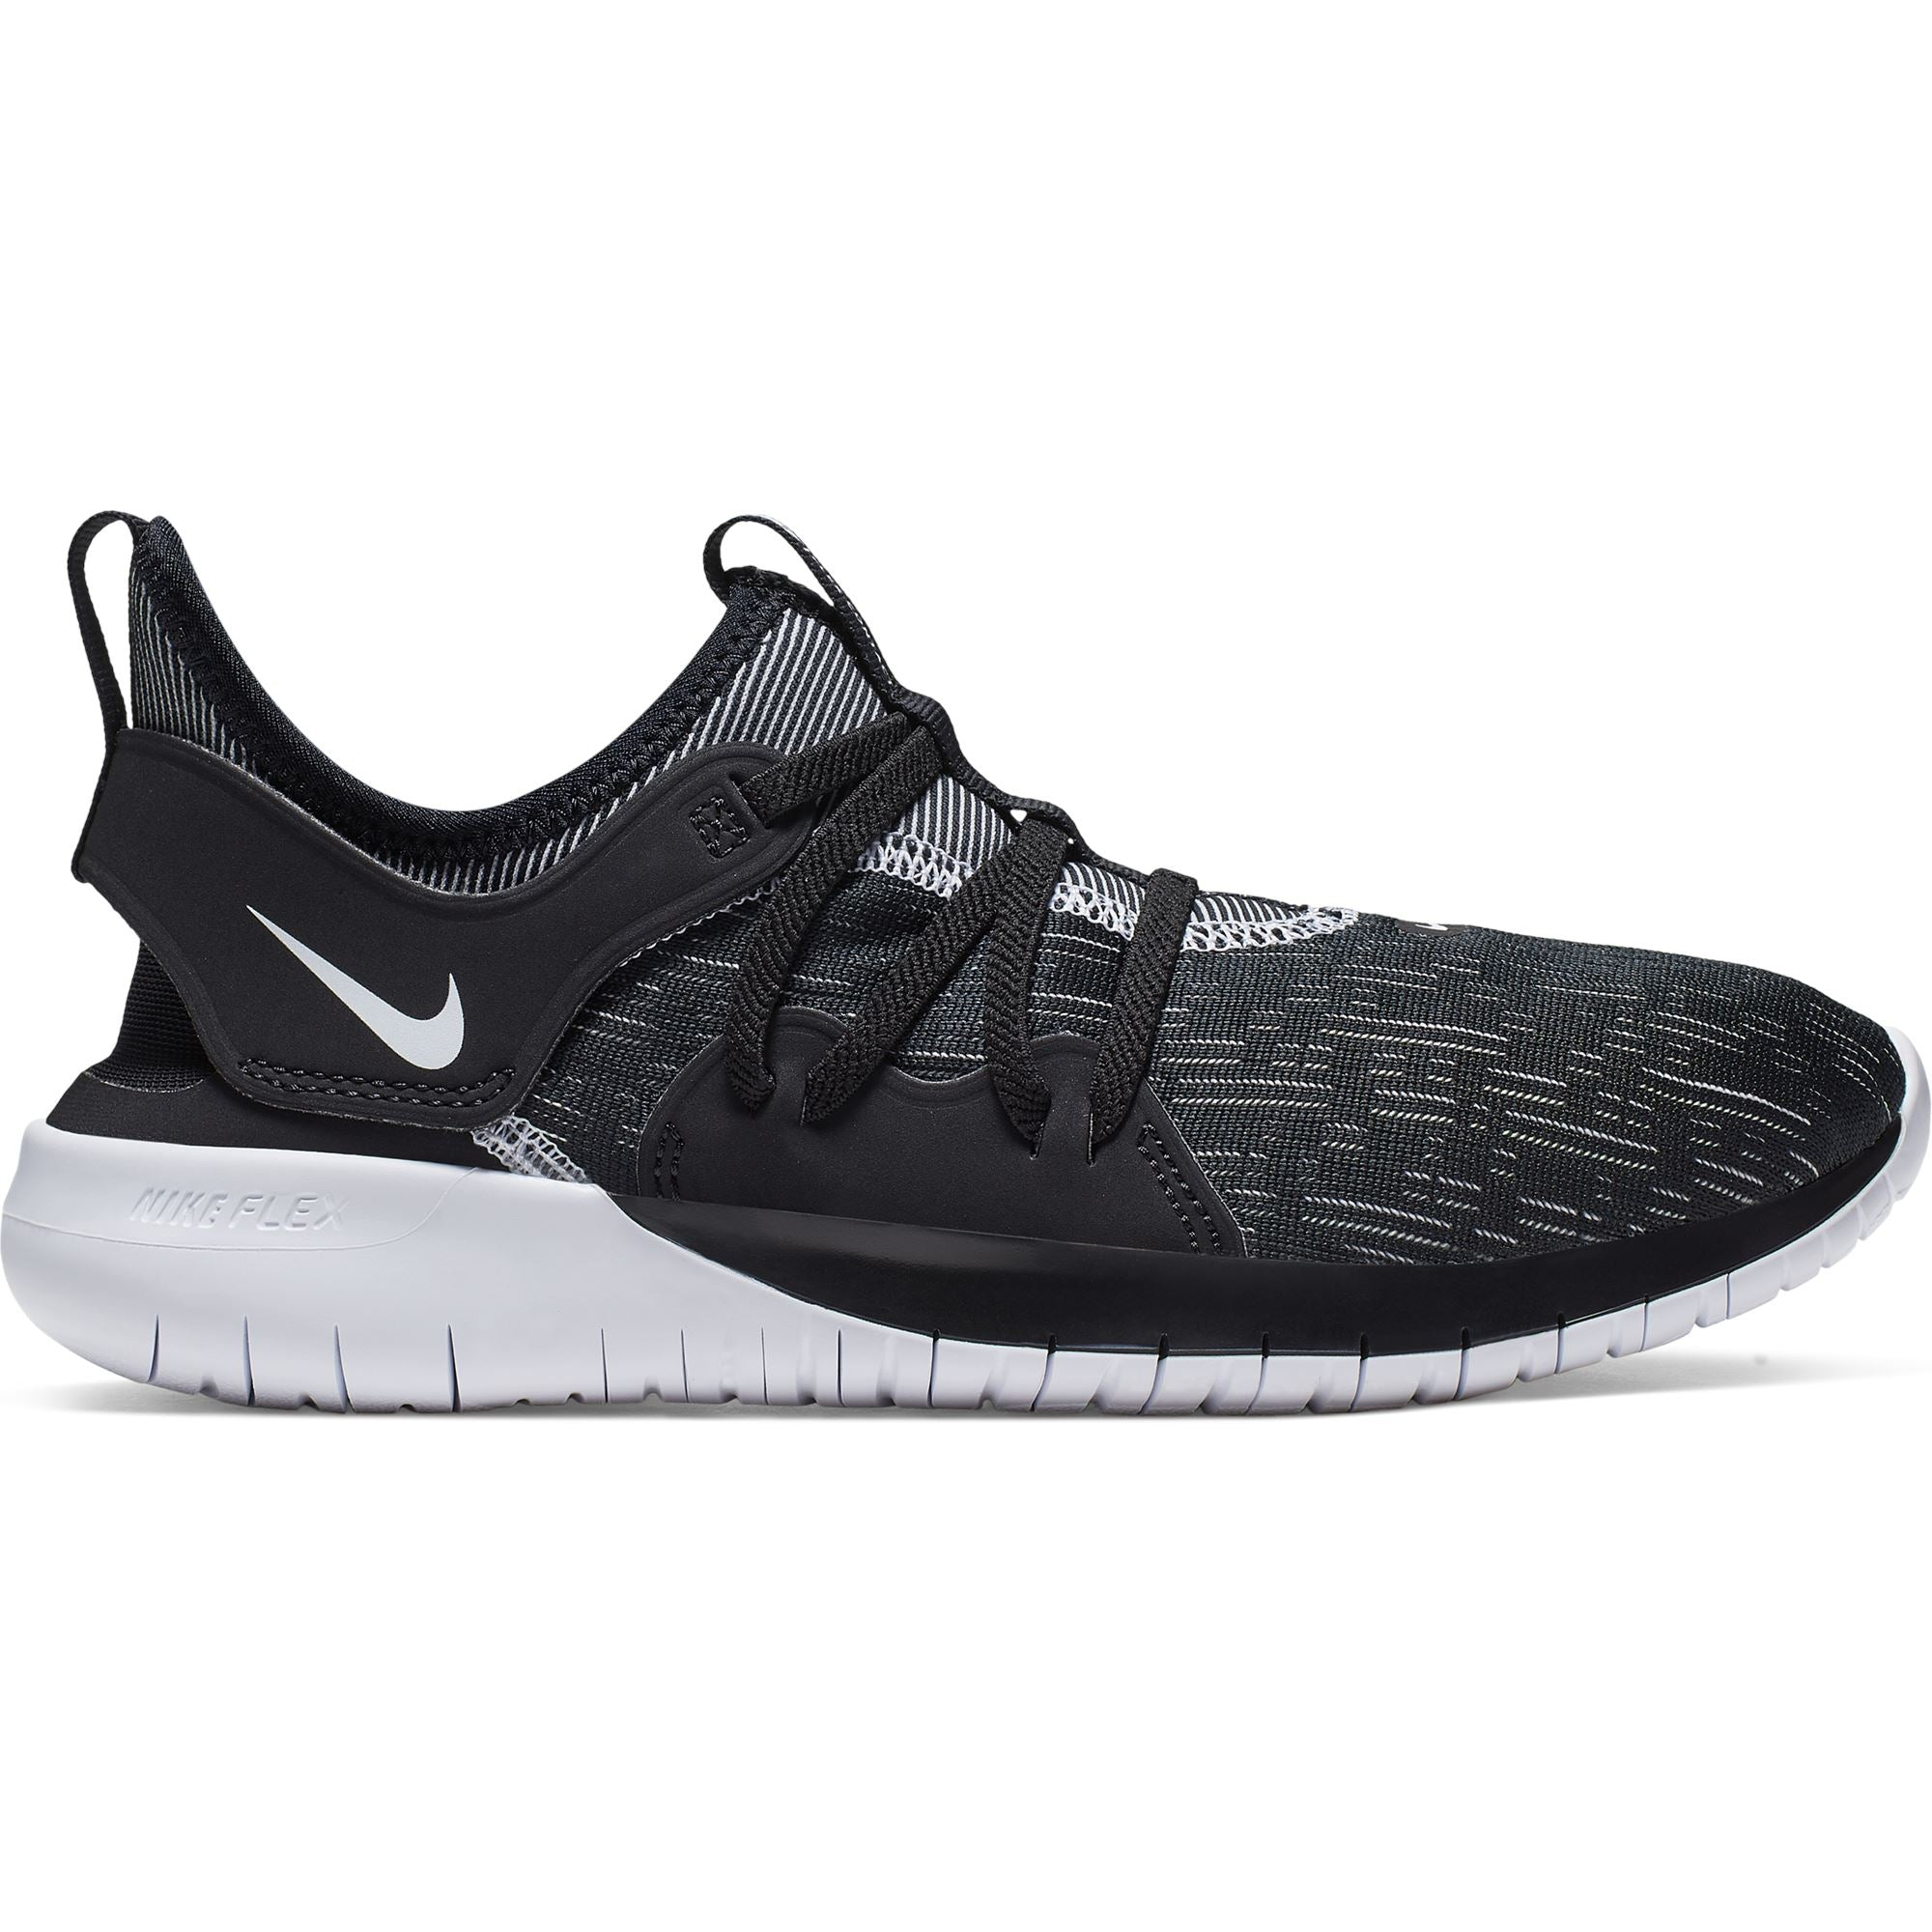 Nike Womens Flex Contact 3 - Black/White Q3NIKE Nike